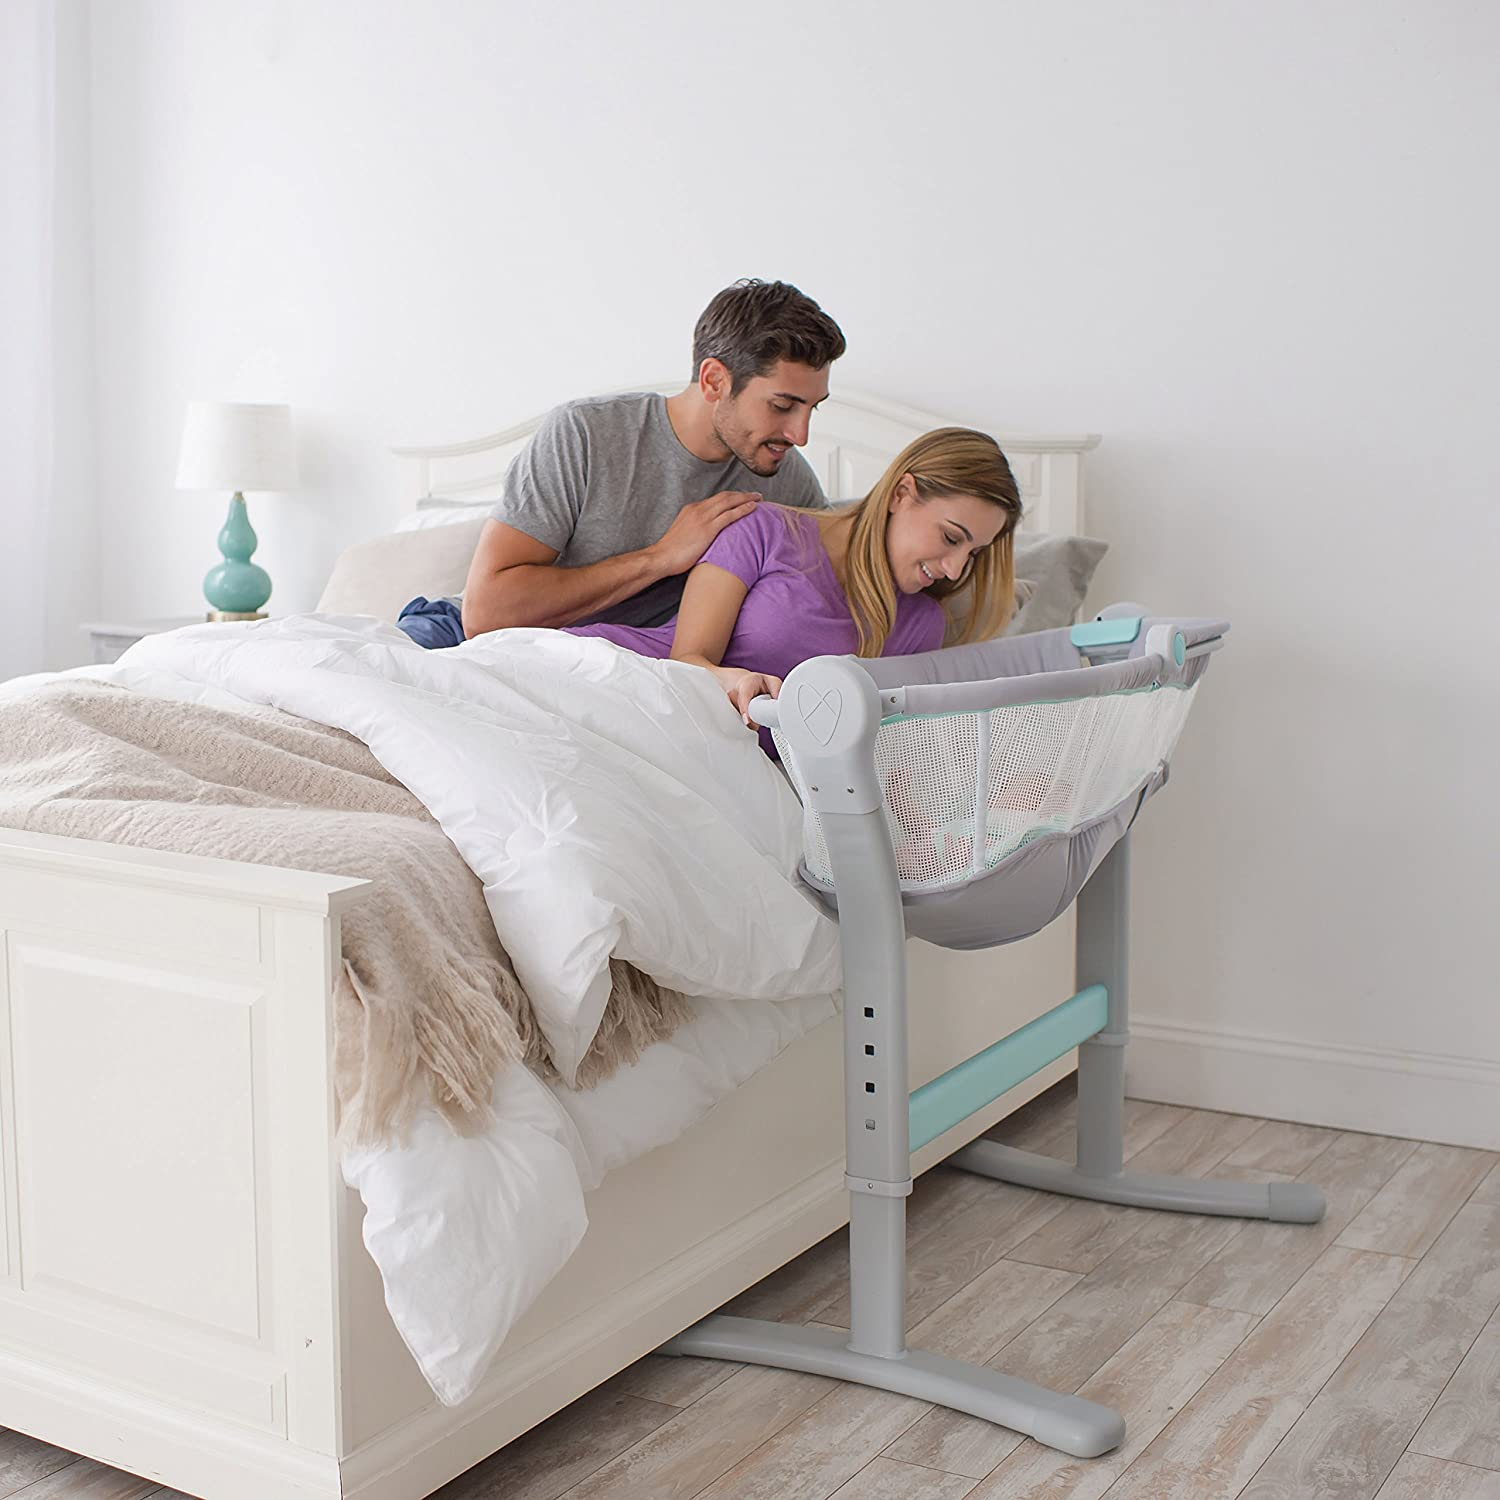 Baby bed that connects to parents bed - Baby Bed That Connects To Parents Bed 48